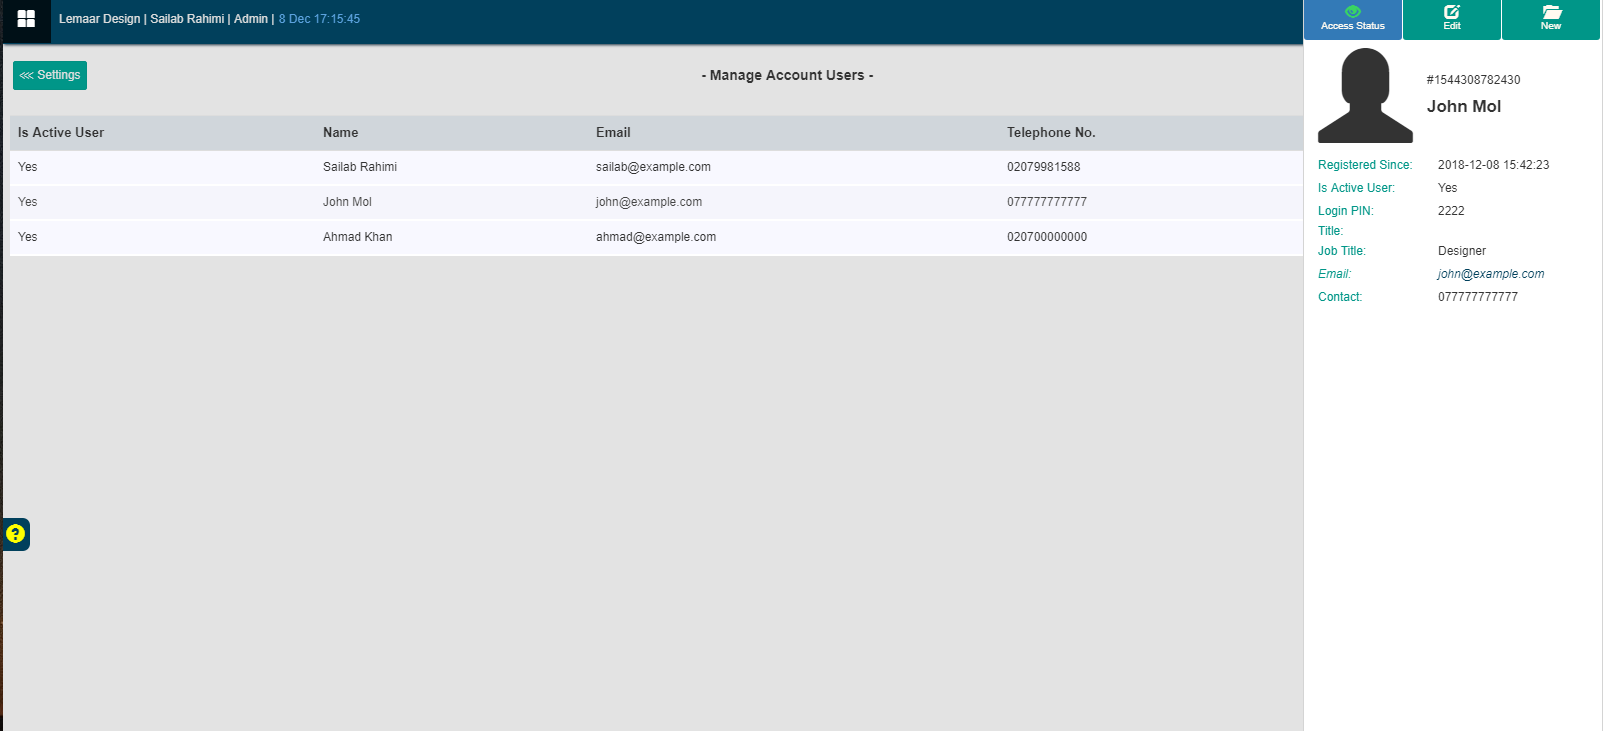 View EPOS Account user details